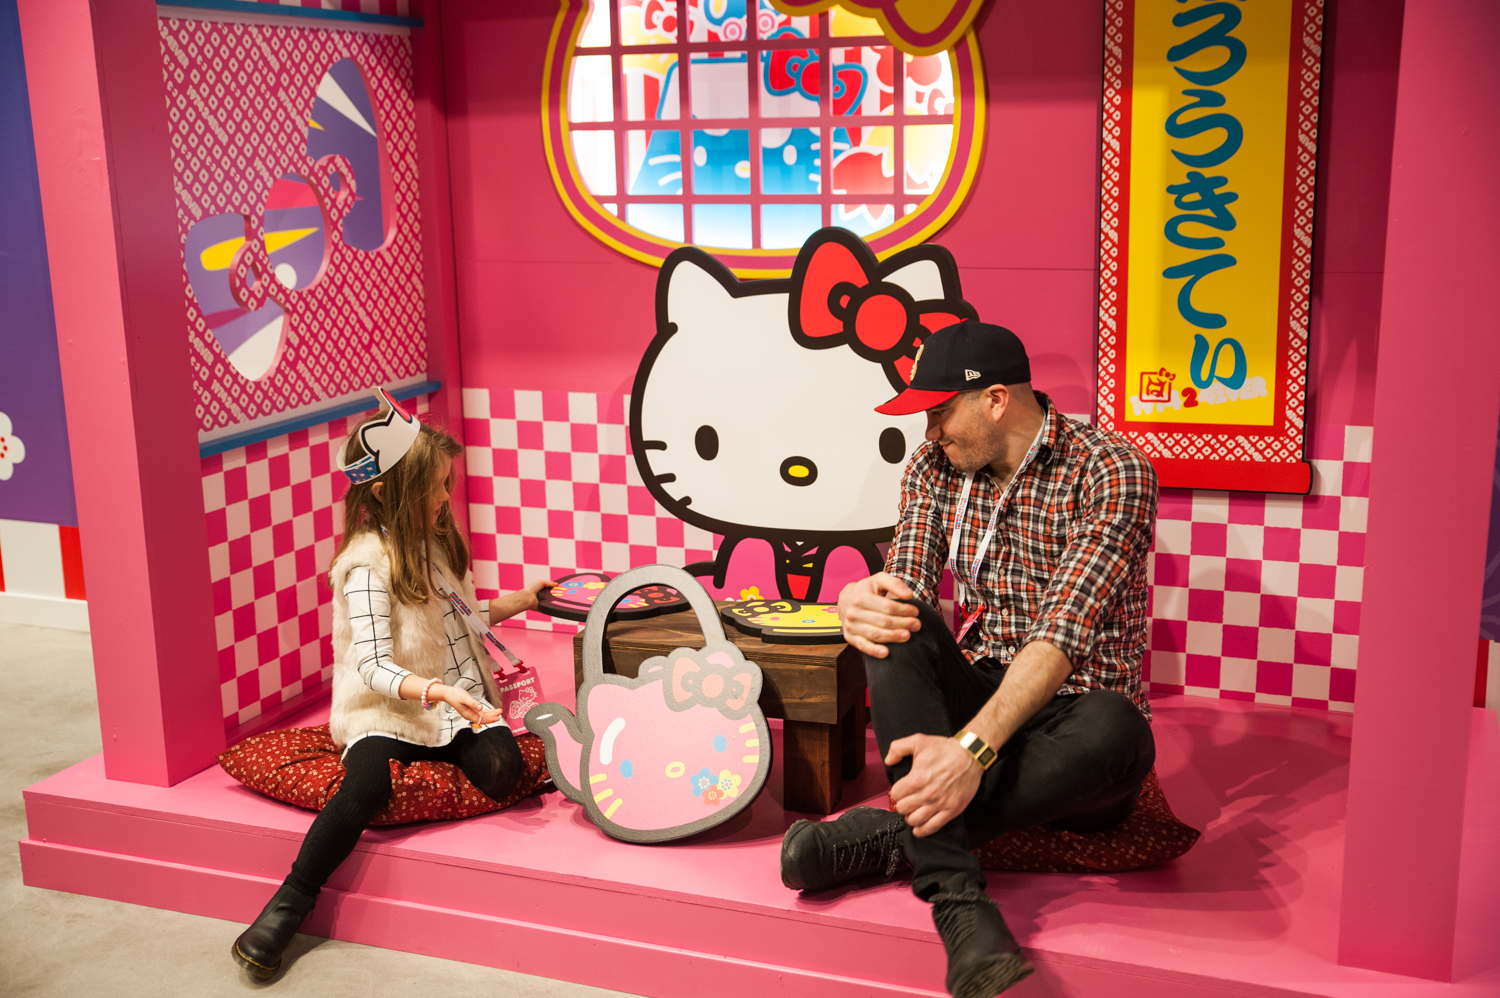 "The Hello Kitty Friends Around the World Tour has officially arrived in the Pacific Northwest for it's second time! Setting up shop in Bellevue until December 29, the immersive, sensory experience lets you walk through the world of Hello Kitty and her friends. 10,000 supercute square feet, the pop up has five rooms: London (Hello Kitty's house), Paris (Hello Kitty Cafe), New York, Honolulu, Tokyo and Baggage Claim (gift shop). While the pop up is open through 12/29, different days have different hours, so{&nbsp;}<a  href=""https://www.showclix.com/event/hello-kitty-seattle"" target=""_blank"" title=""https://www.showclix.com/event/hello-kitty-seattle"">make sure you check those out before you go. Tickets start at $22.</a>{&nbsp;}(Image: Elizabeth Crook / Seattle Refined)"